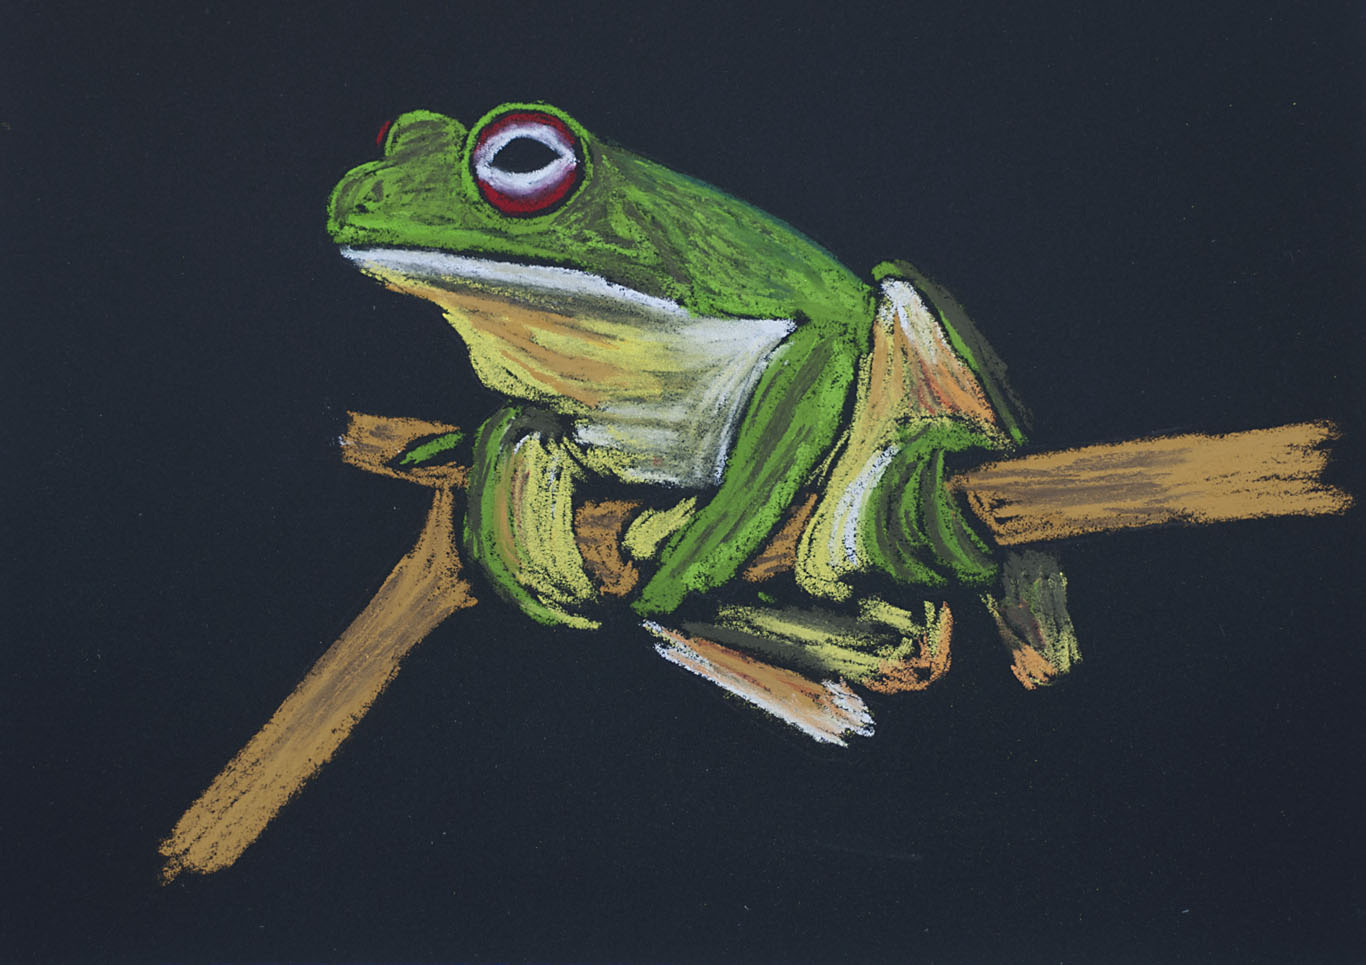 PG_Red-eyed_Tree-frog_Greenhill_Exhibition_2007.jpg